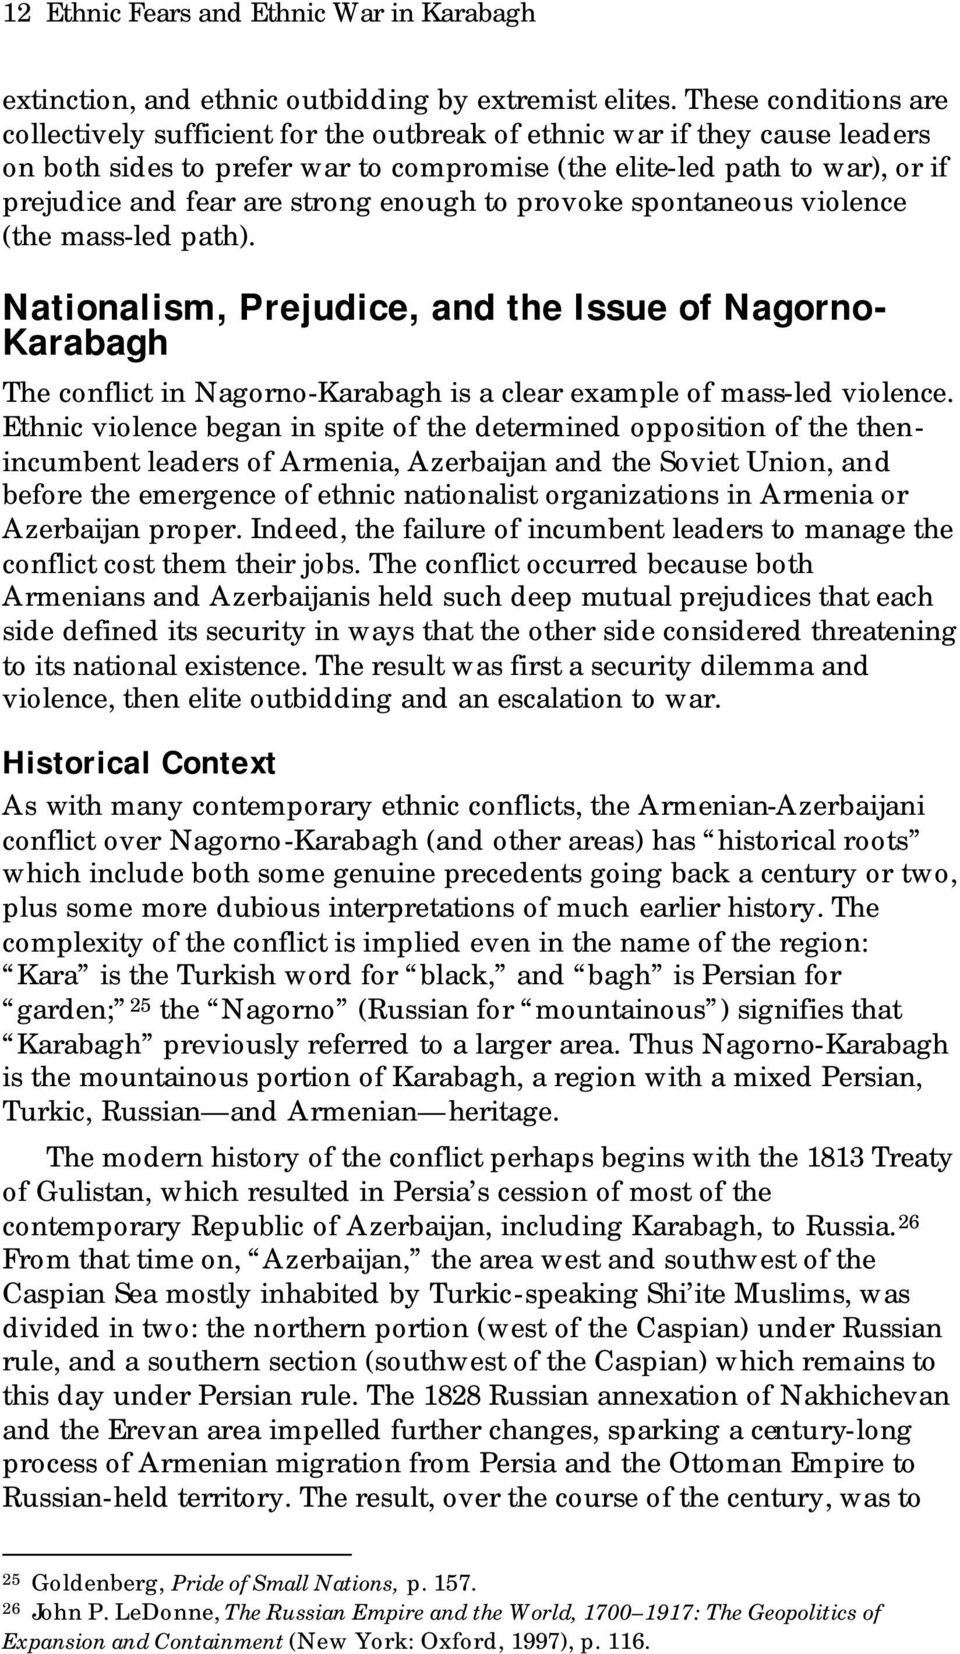 strong enough to provoke spontaneous violence (the mass-led path). Nationalism, Prejudice, and the Issue of Nagorno- Karabagh The conflict in Nagorno-Karabagh is a clear example of mass-led violence.